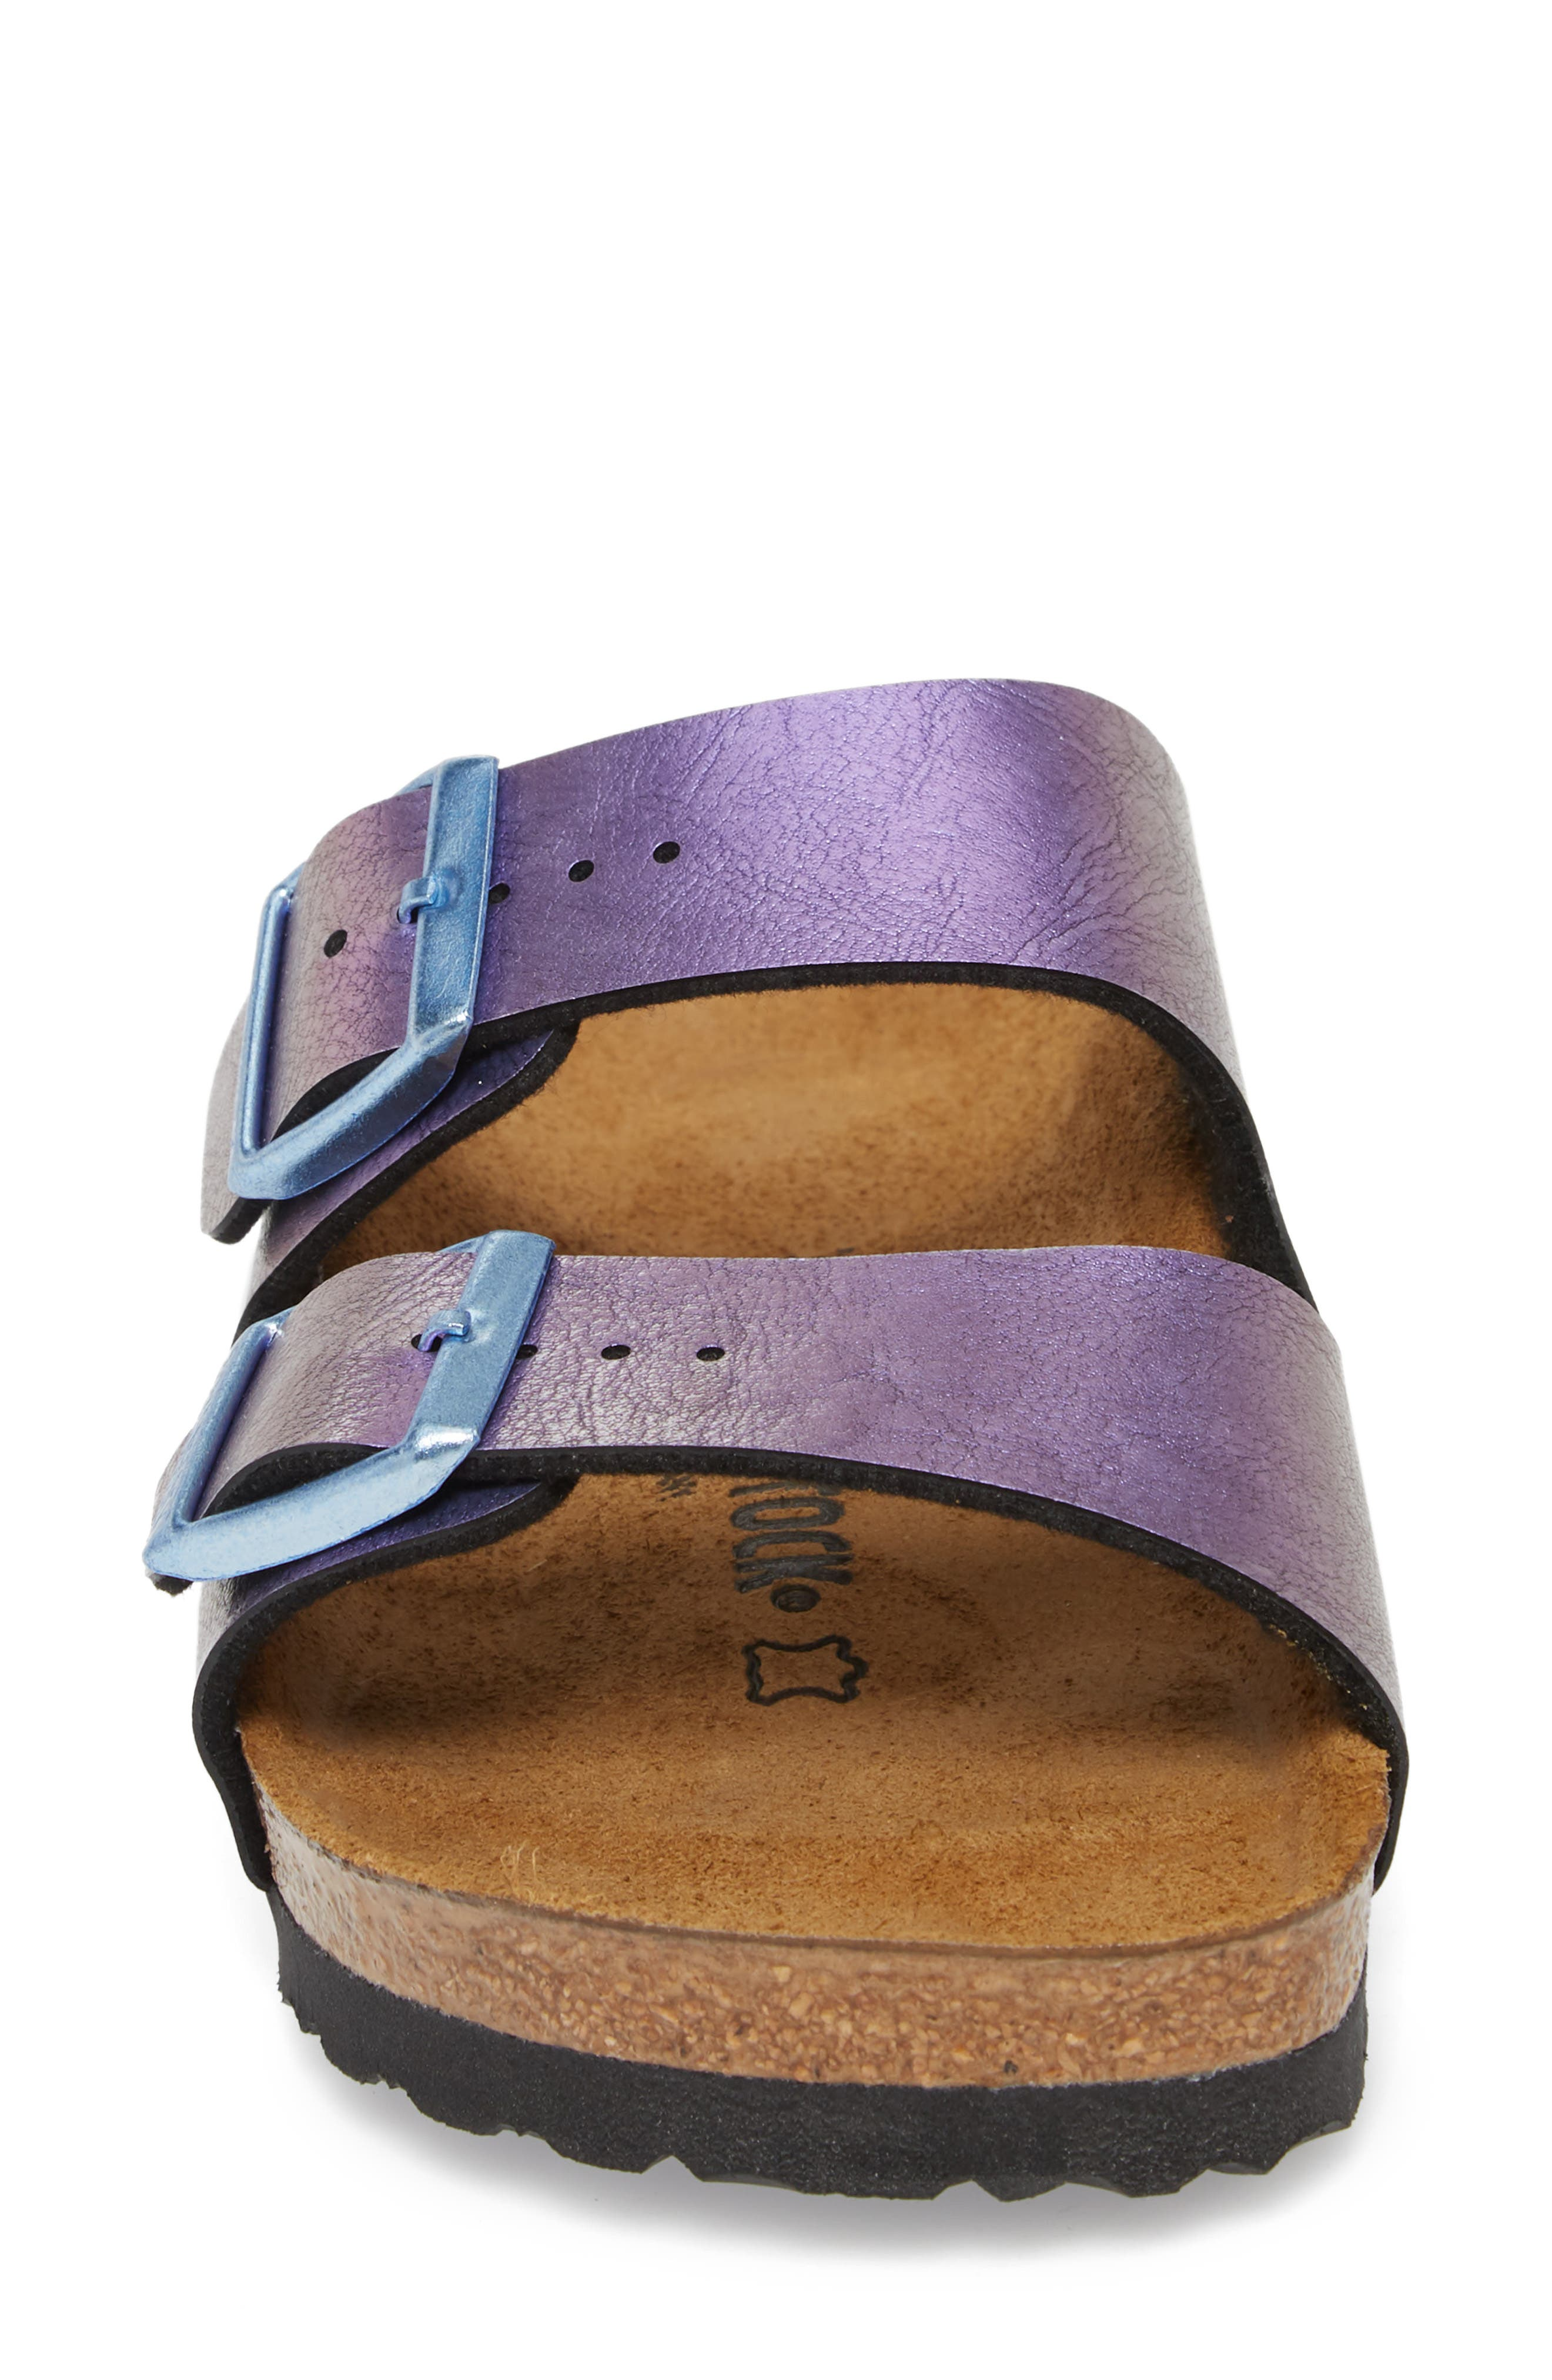 Arizona Graceful Birko-Flor<sup>™</sup> Sandal,                             Alternate thumbnail 4, color,                             VIOLET